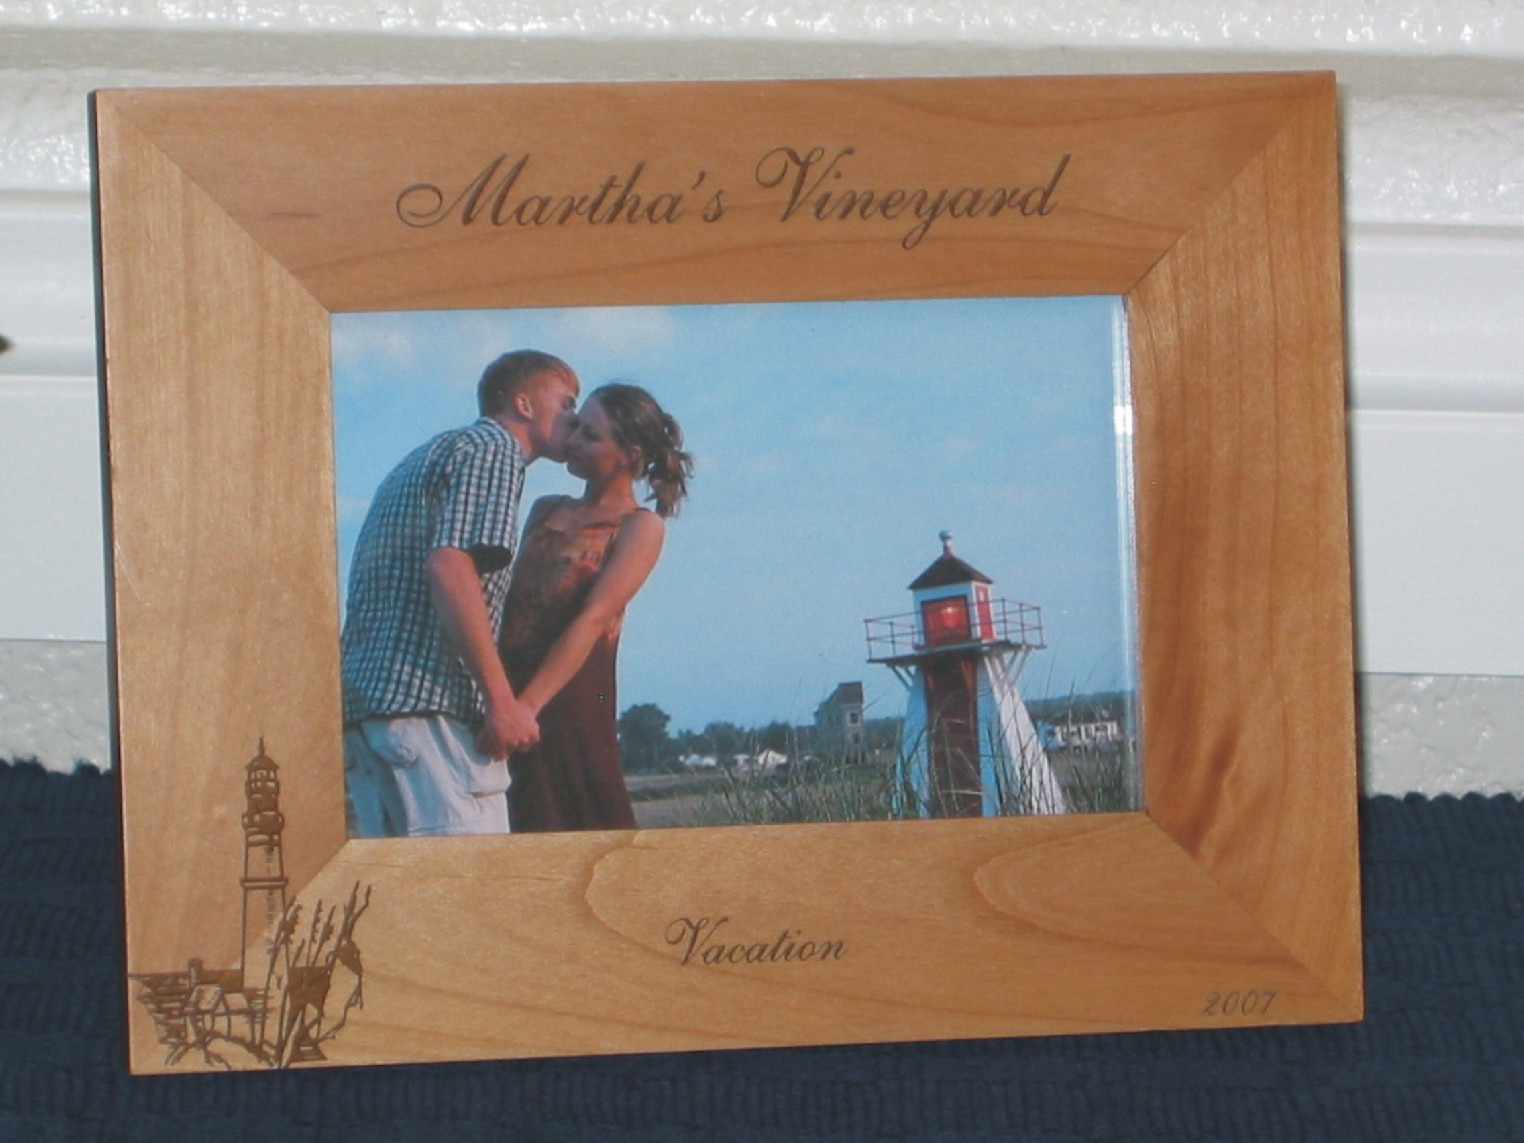 marthas vineyard picture frame personalized frame laser engraved lighthouse theme